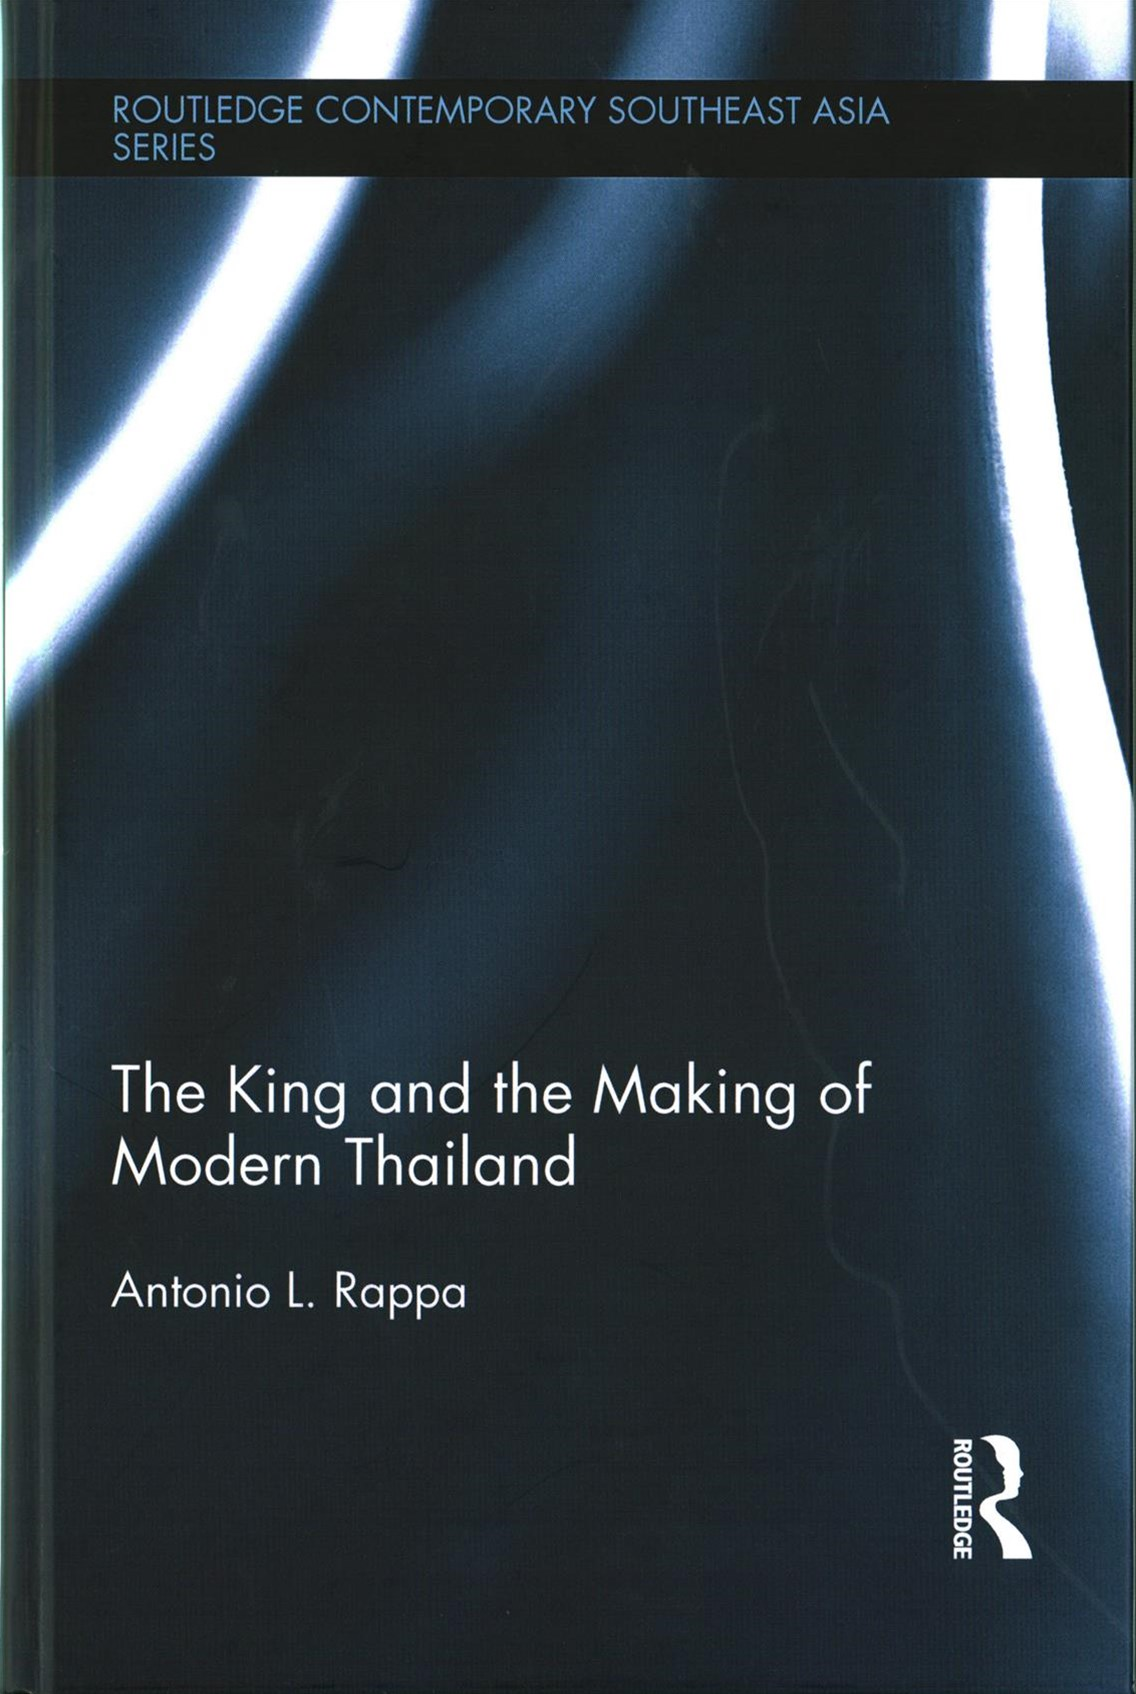 King and the Making of Modern Thailand